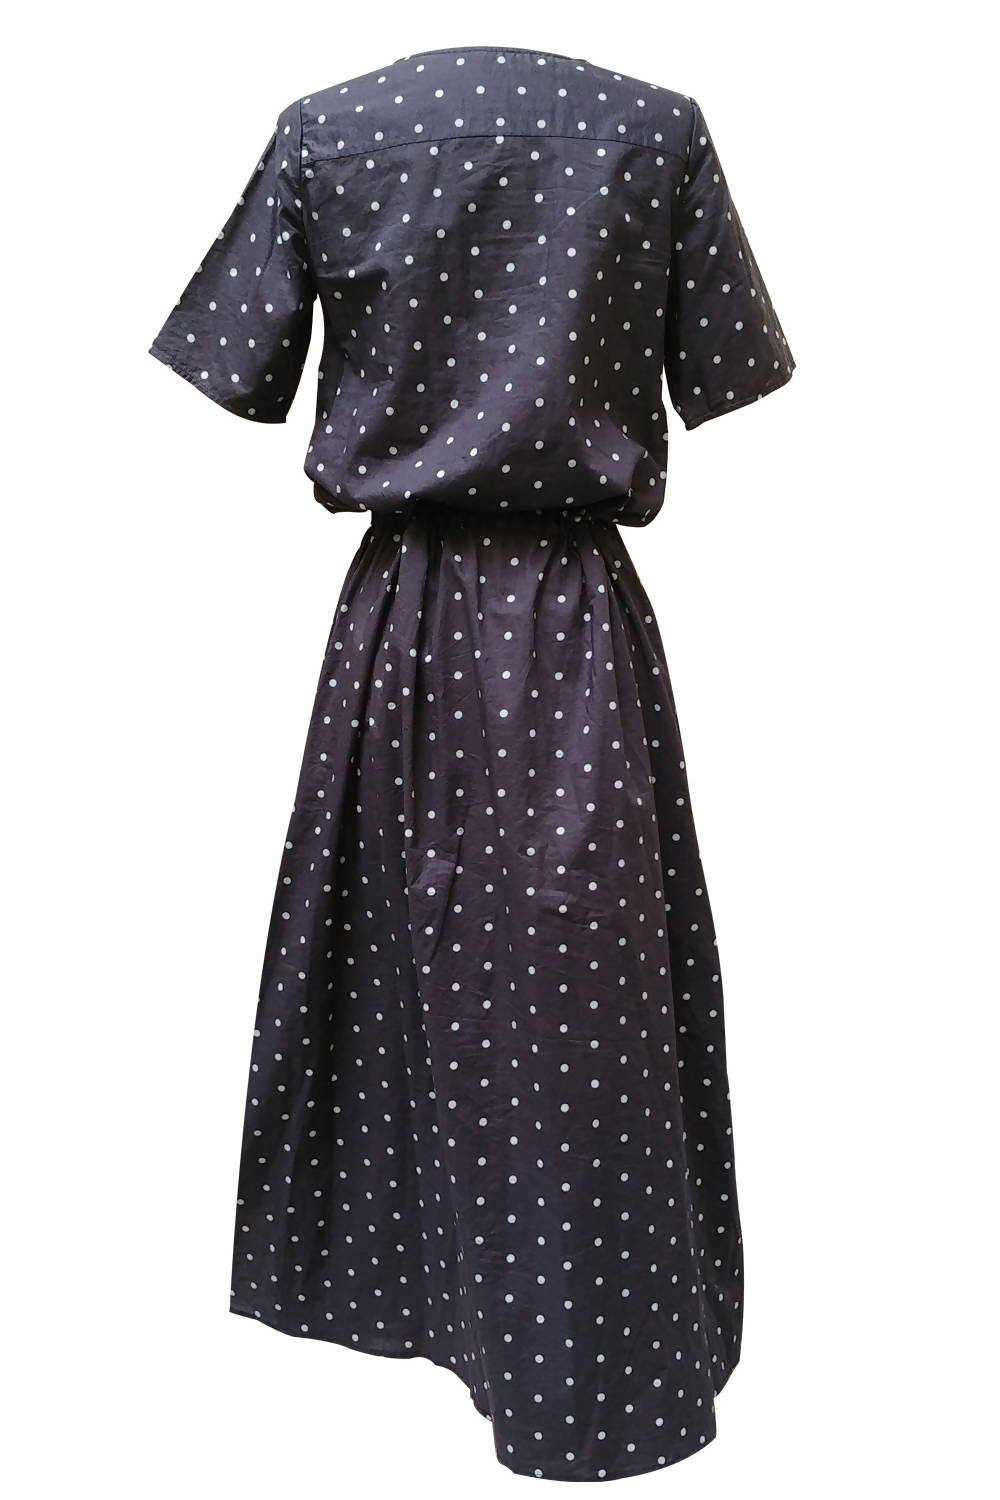 Upcycled cotton dress Myriel - Dotted charcoal